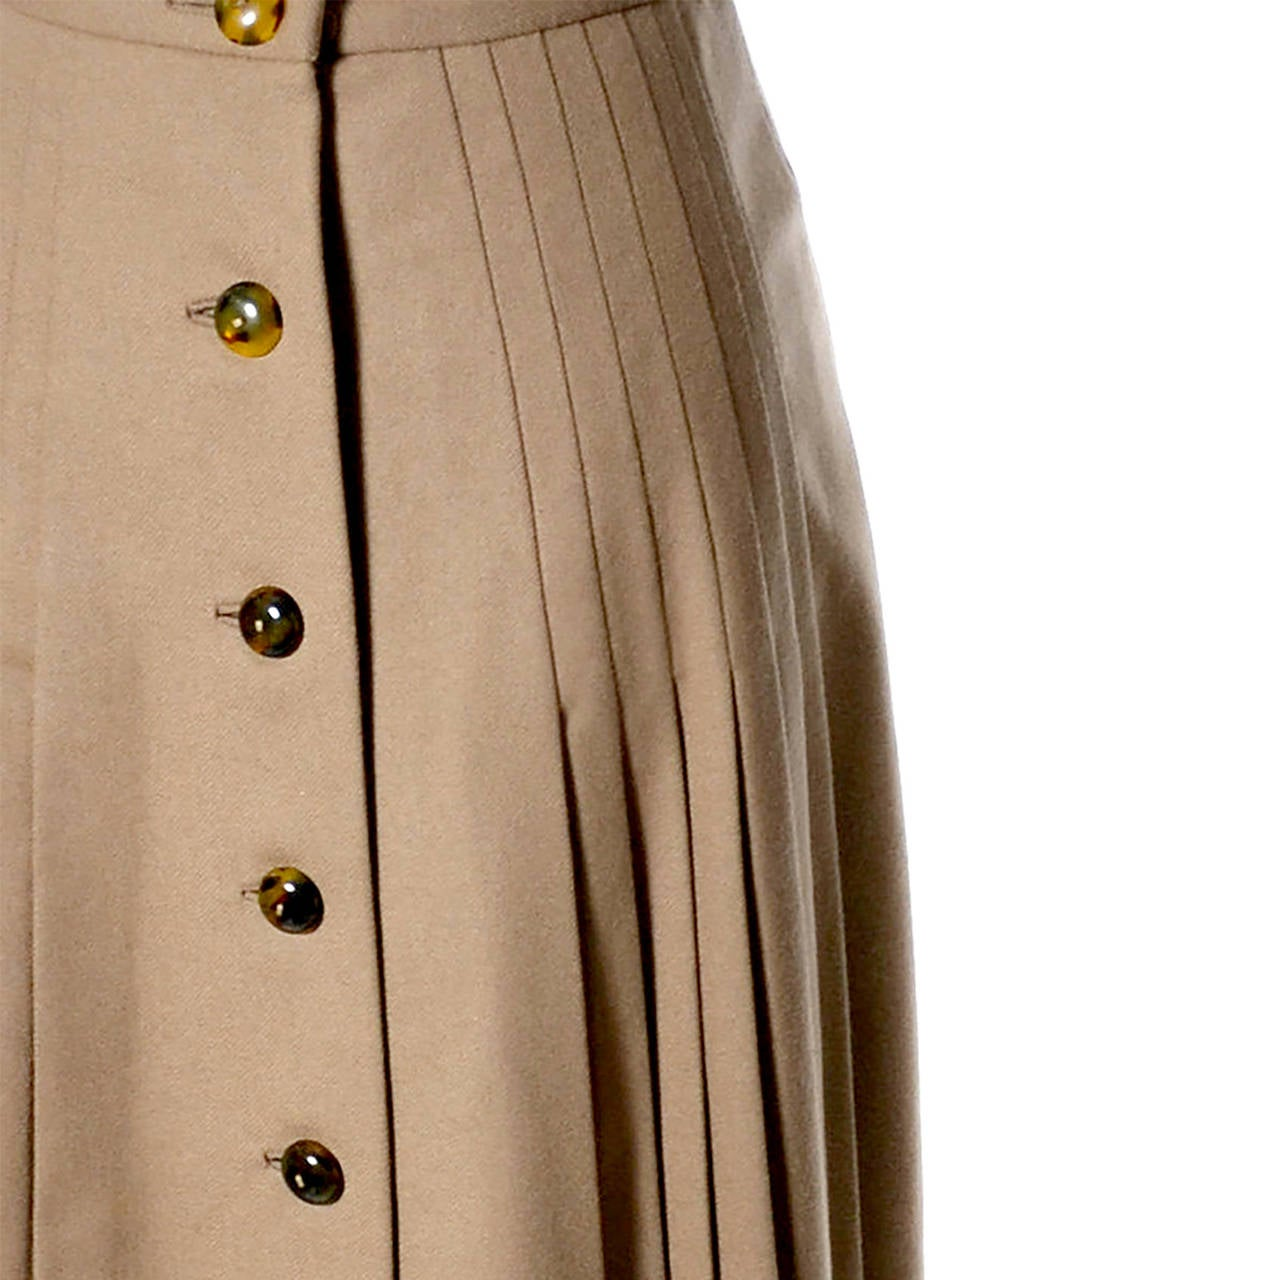 This rare, older label vintage Valentino late 1960's or early 1970's pleated camel wool skirt is in mint condition. The skirt has fabulous buttons and is fully lined.  This vintage Valentino skirt is a collectible piece that comes from an estate of